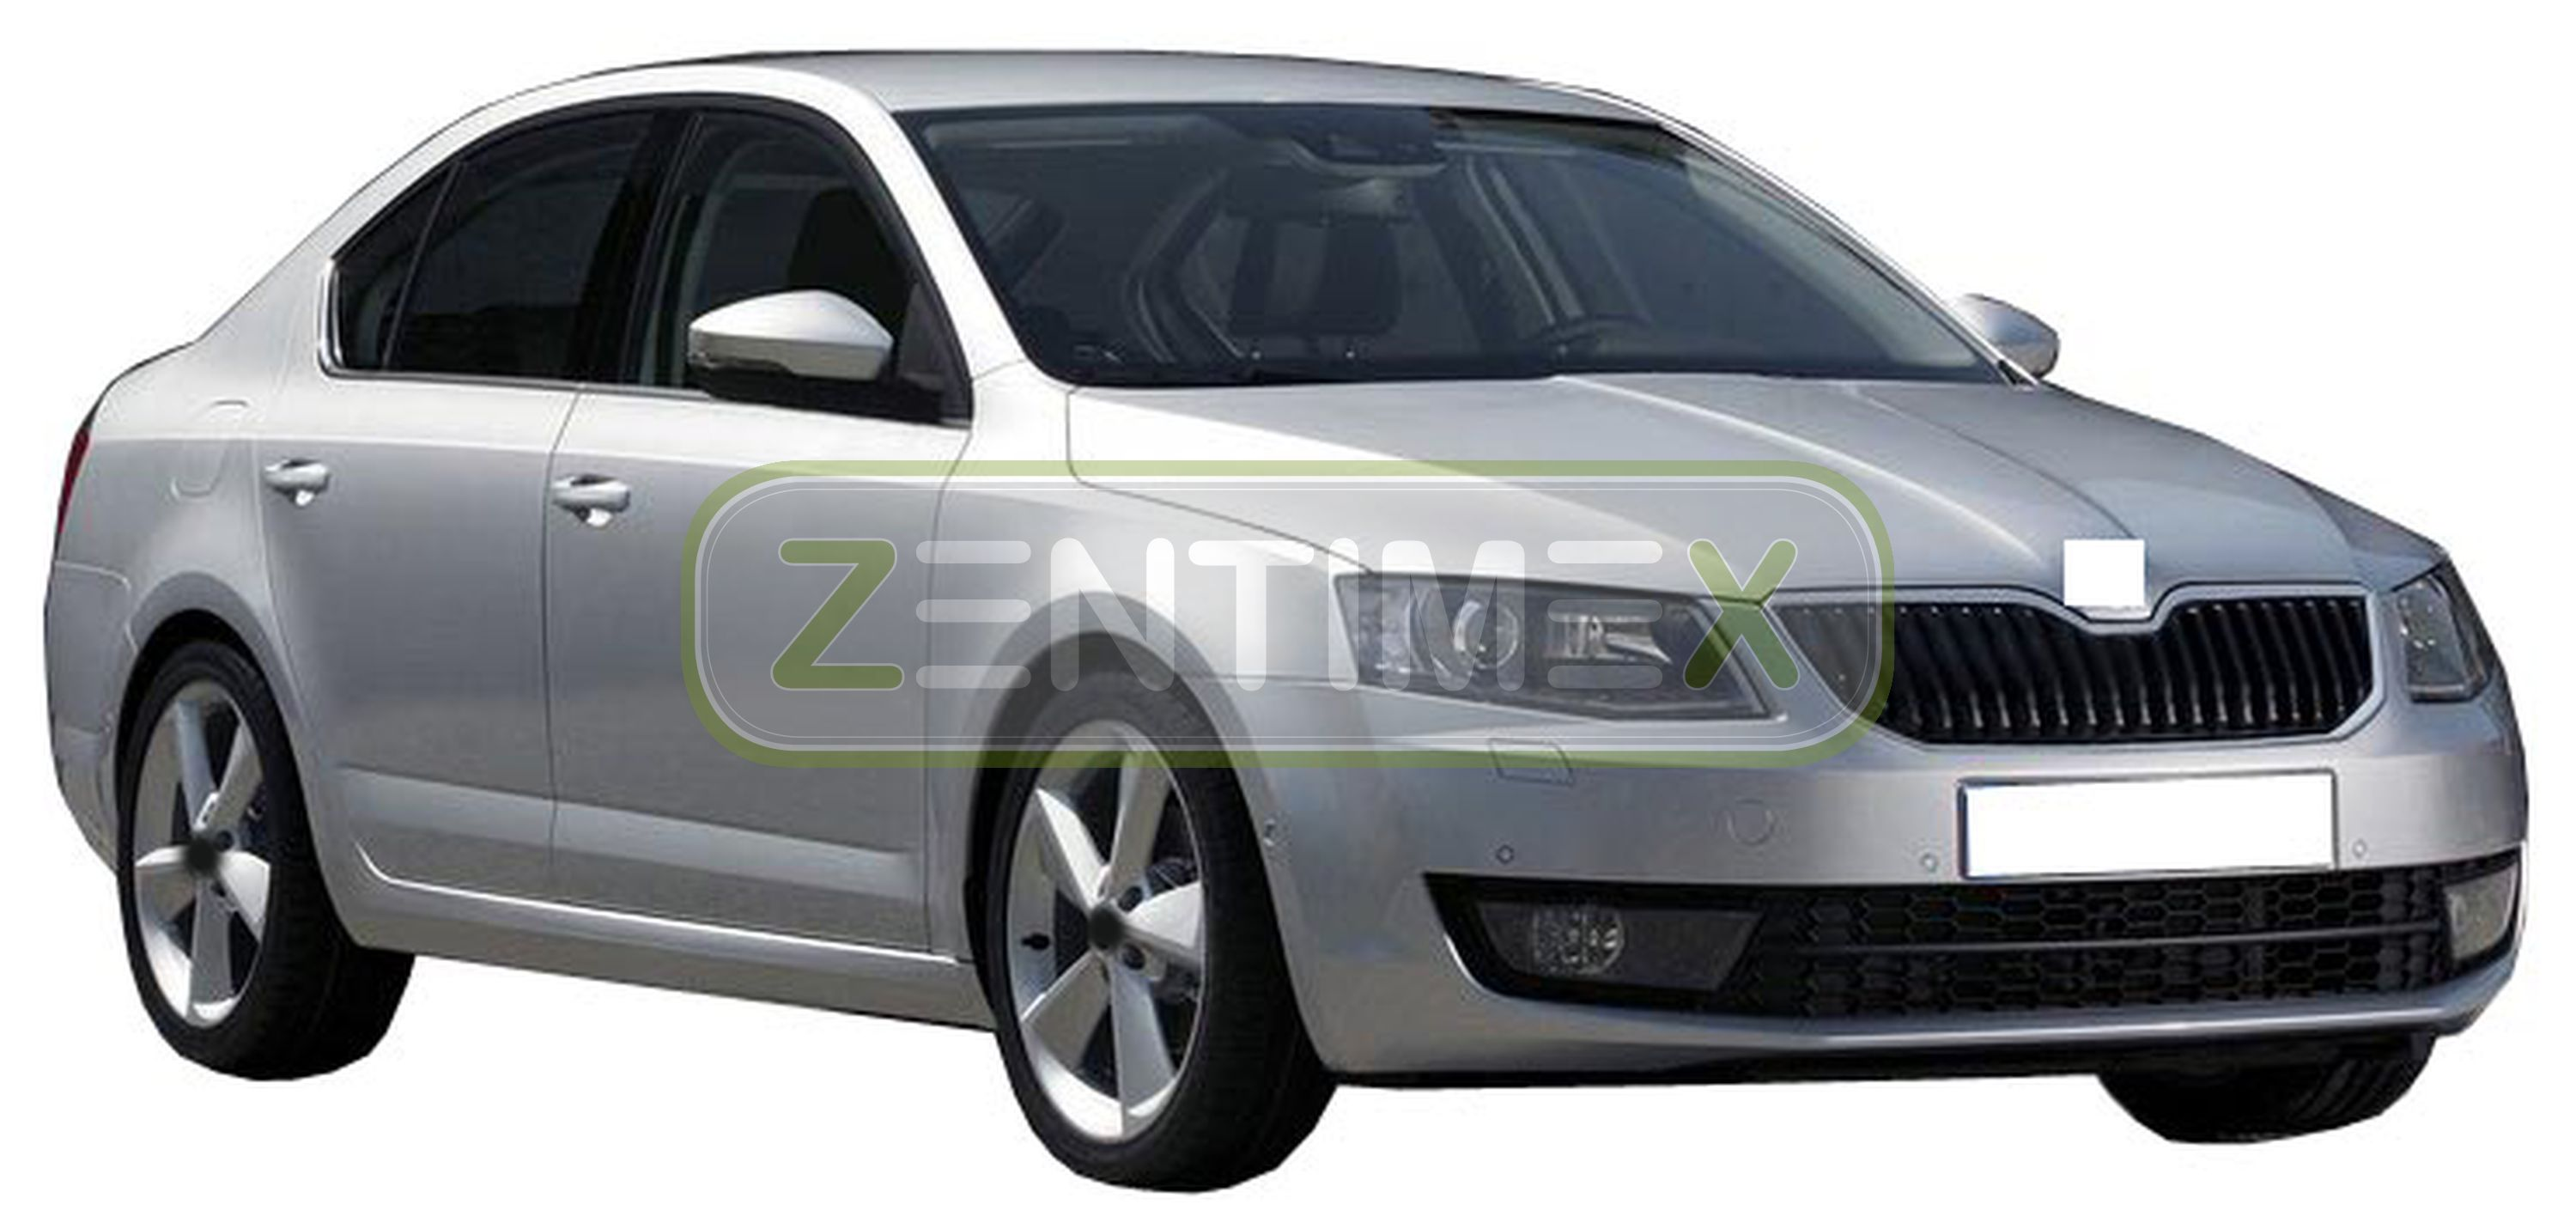 kofferraumwanne f r skoda octavia 3 5e schr ghecklimousine. Black Bedroom Furniture Sets. Home Design Ideas